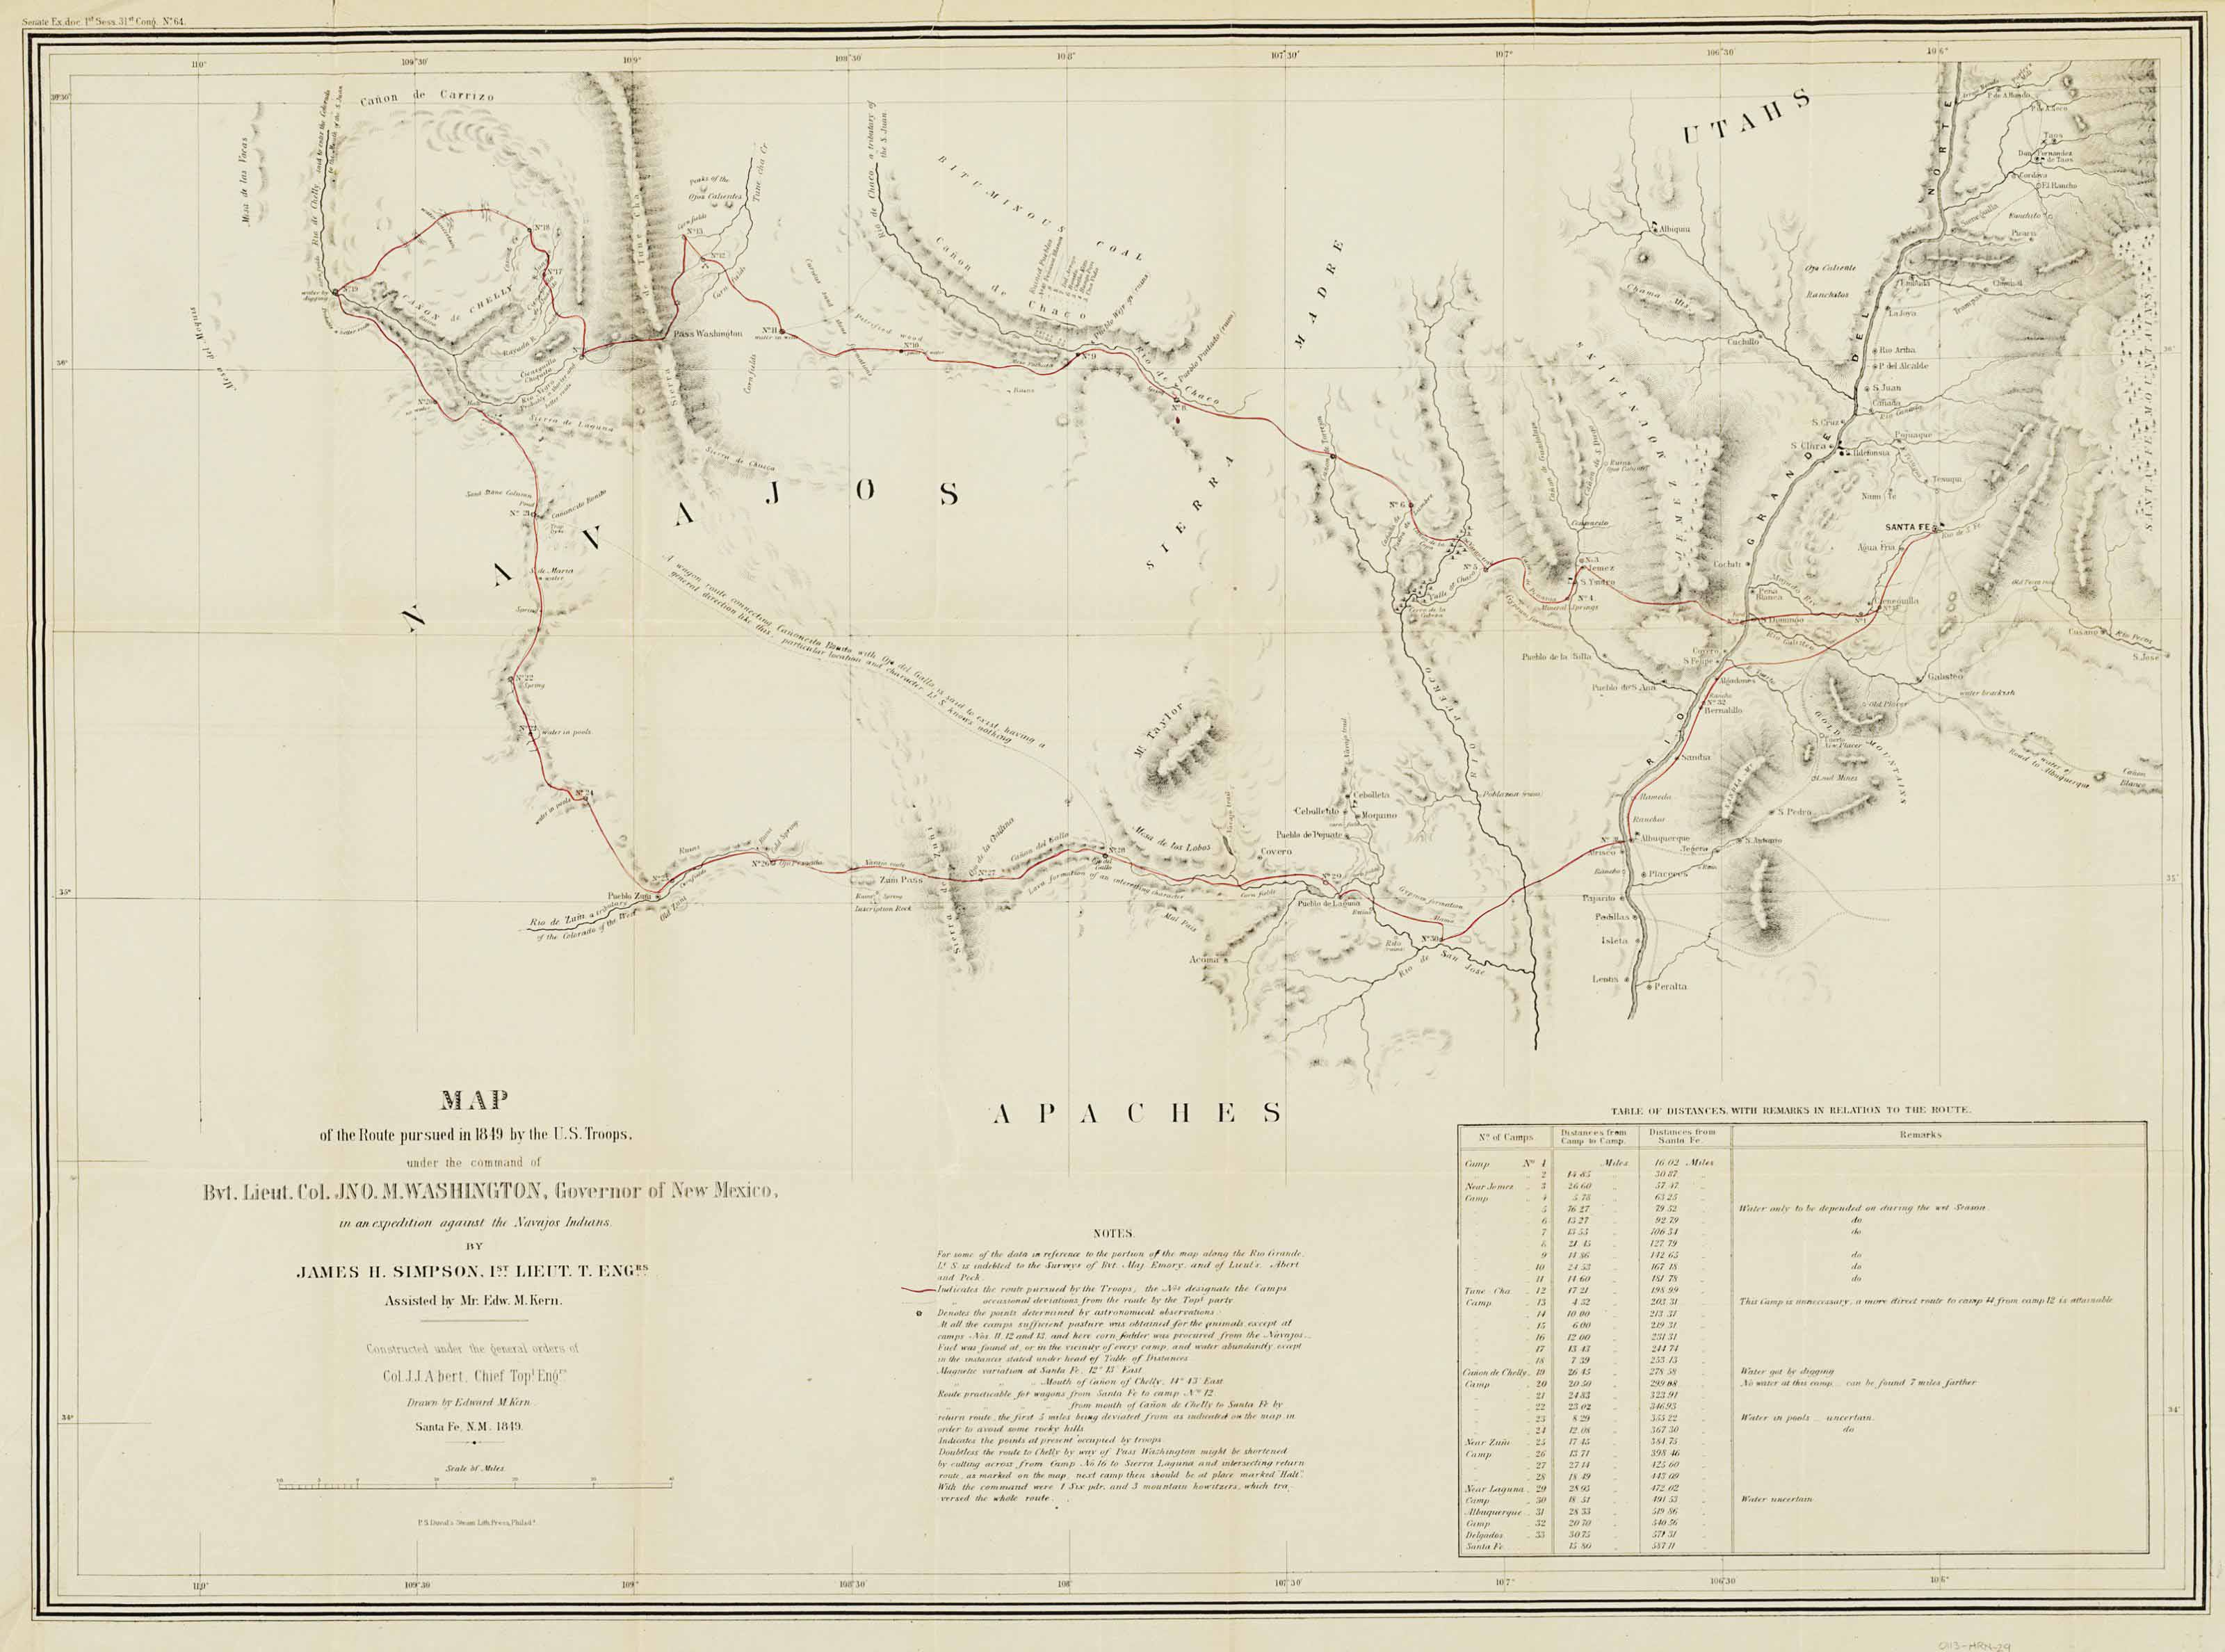 [WESTERN AMERICA.] A group of